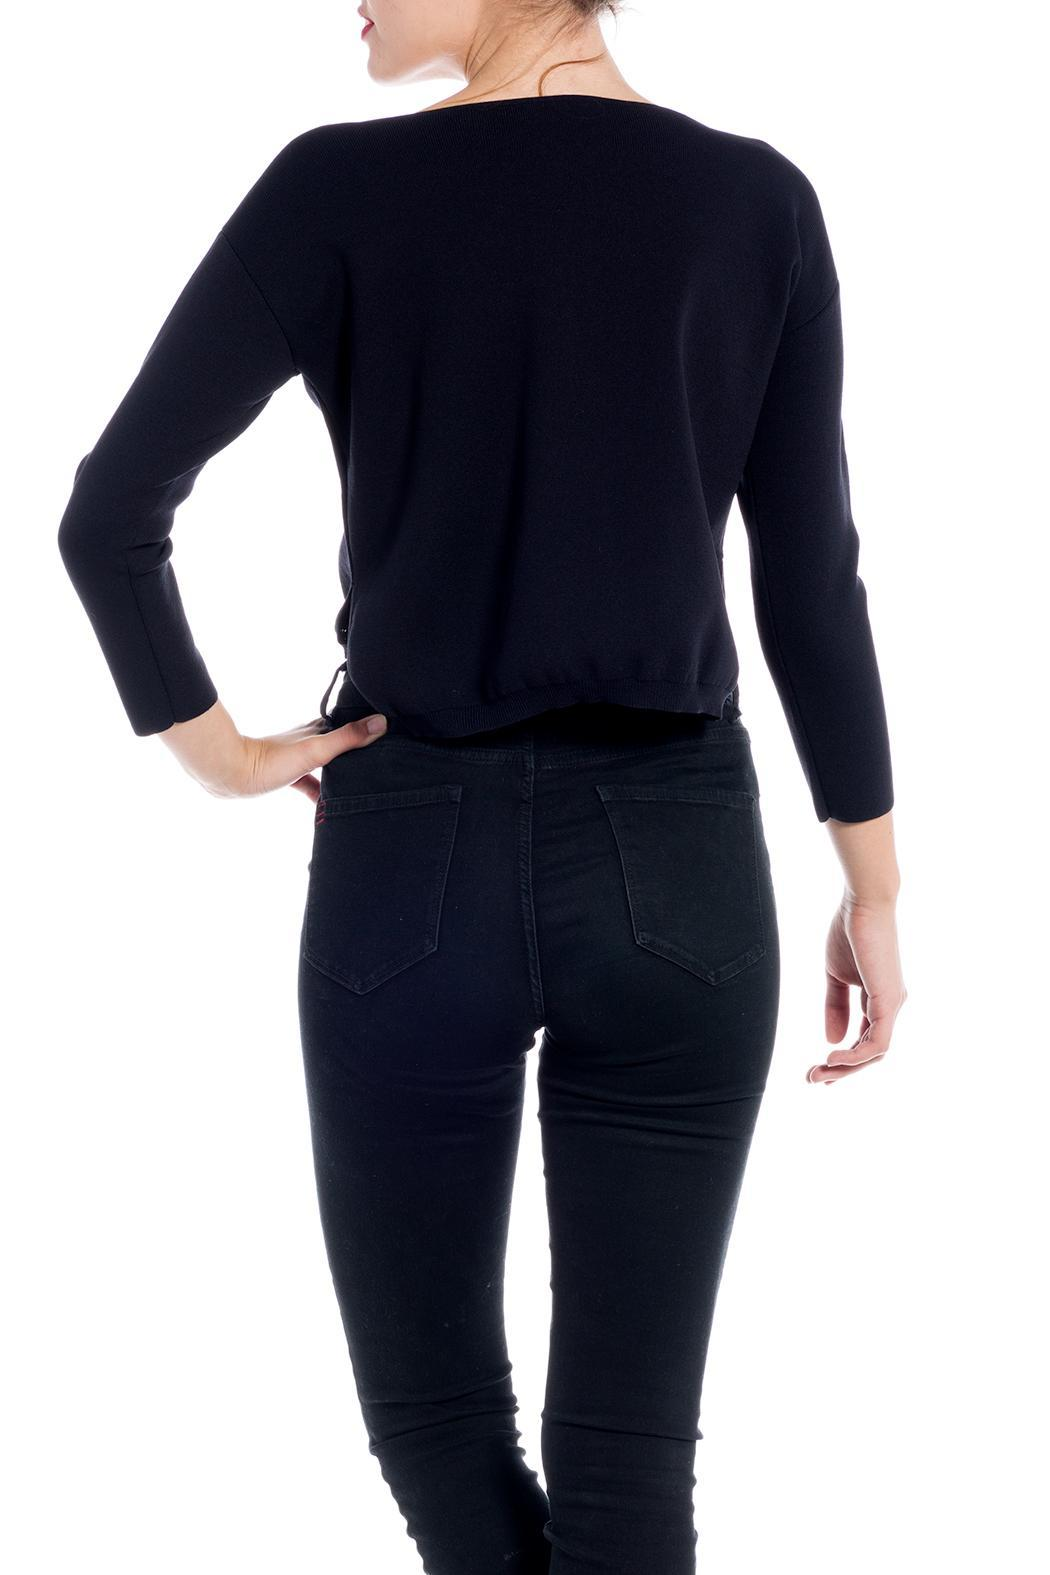 Charlie May Open Neck Sweater - Side Cropped Image